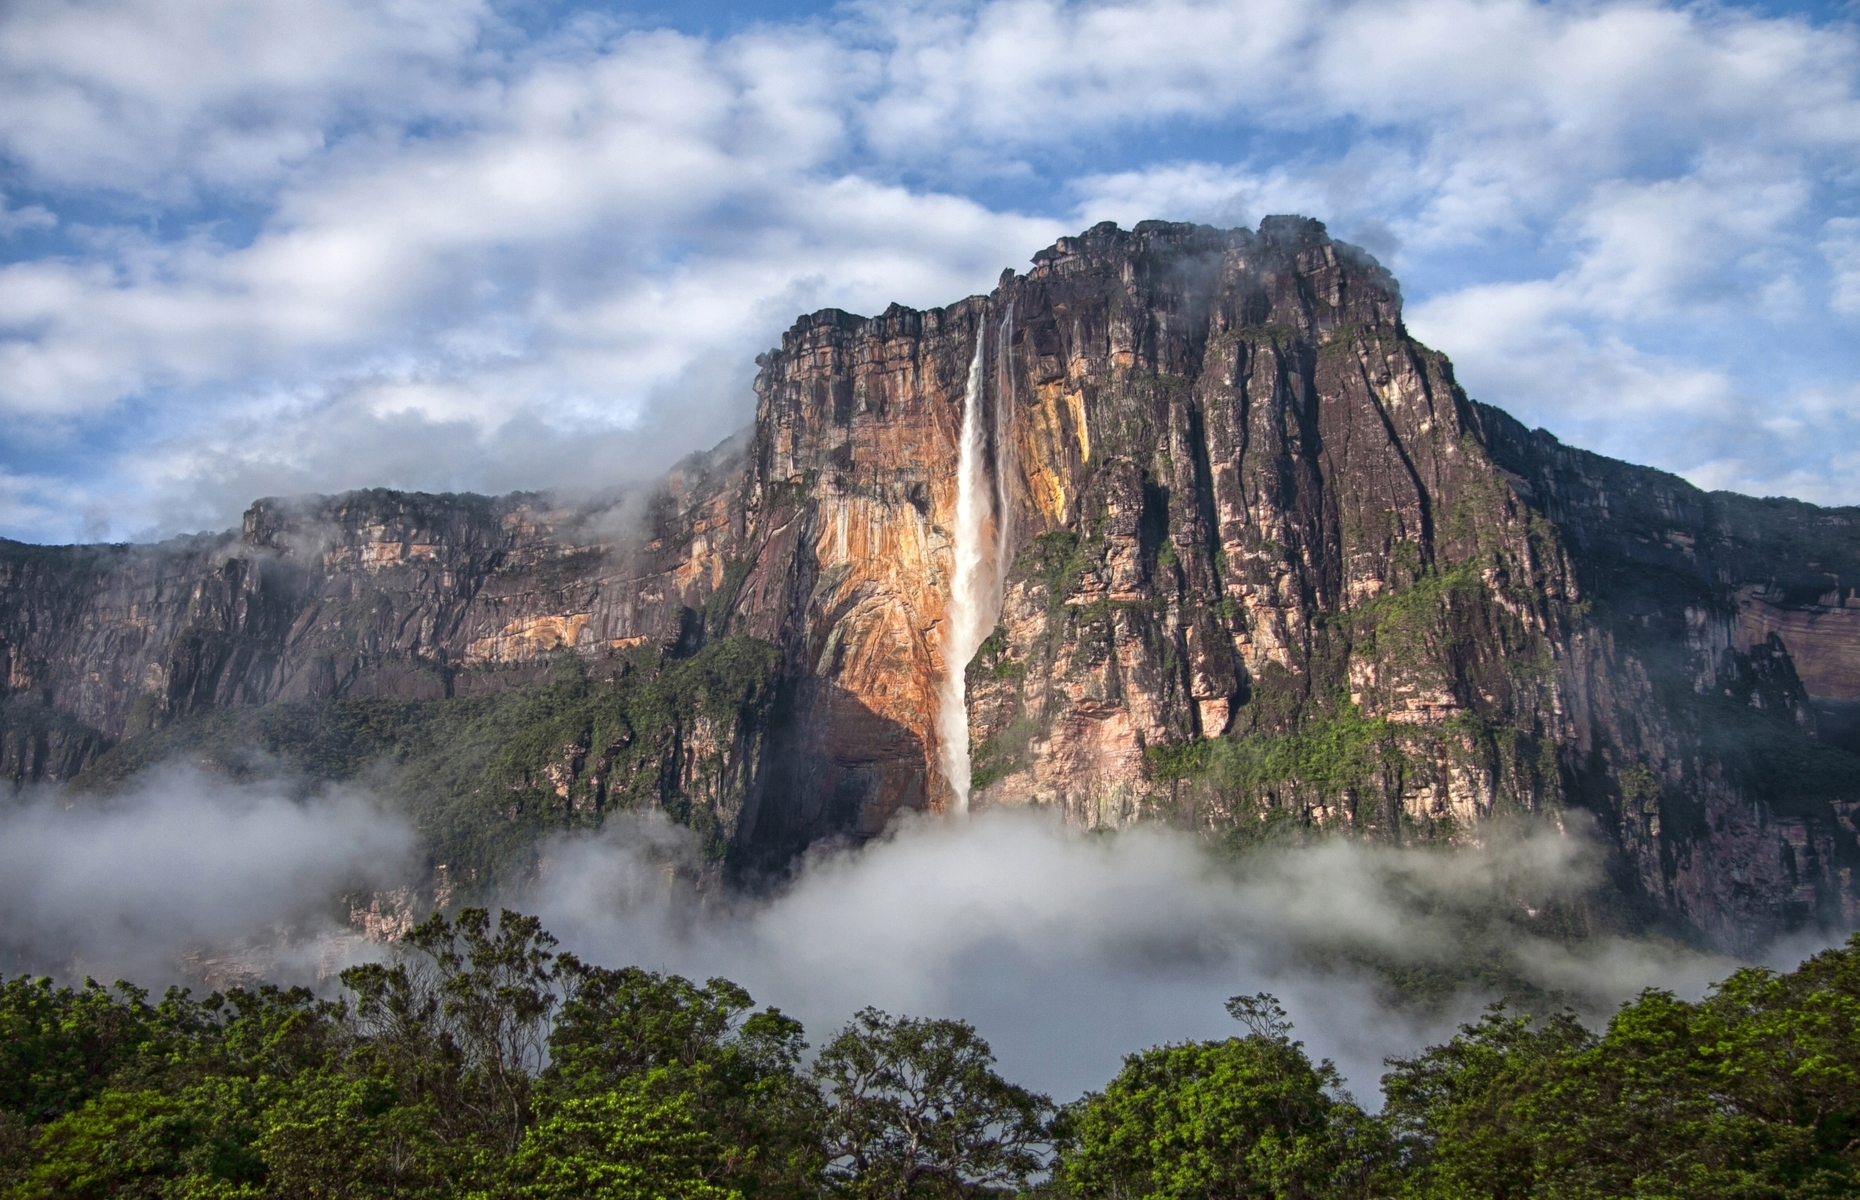 Slide 8 of 41: The world's highest waterfall, Angel Falls in Venezuela, was the inspiration behind Paradise Falls in the movie Up.